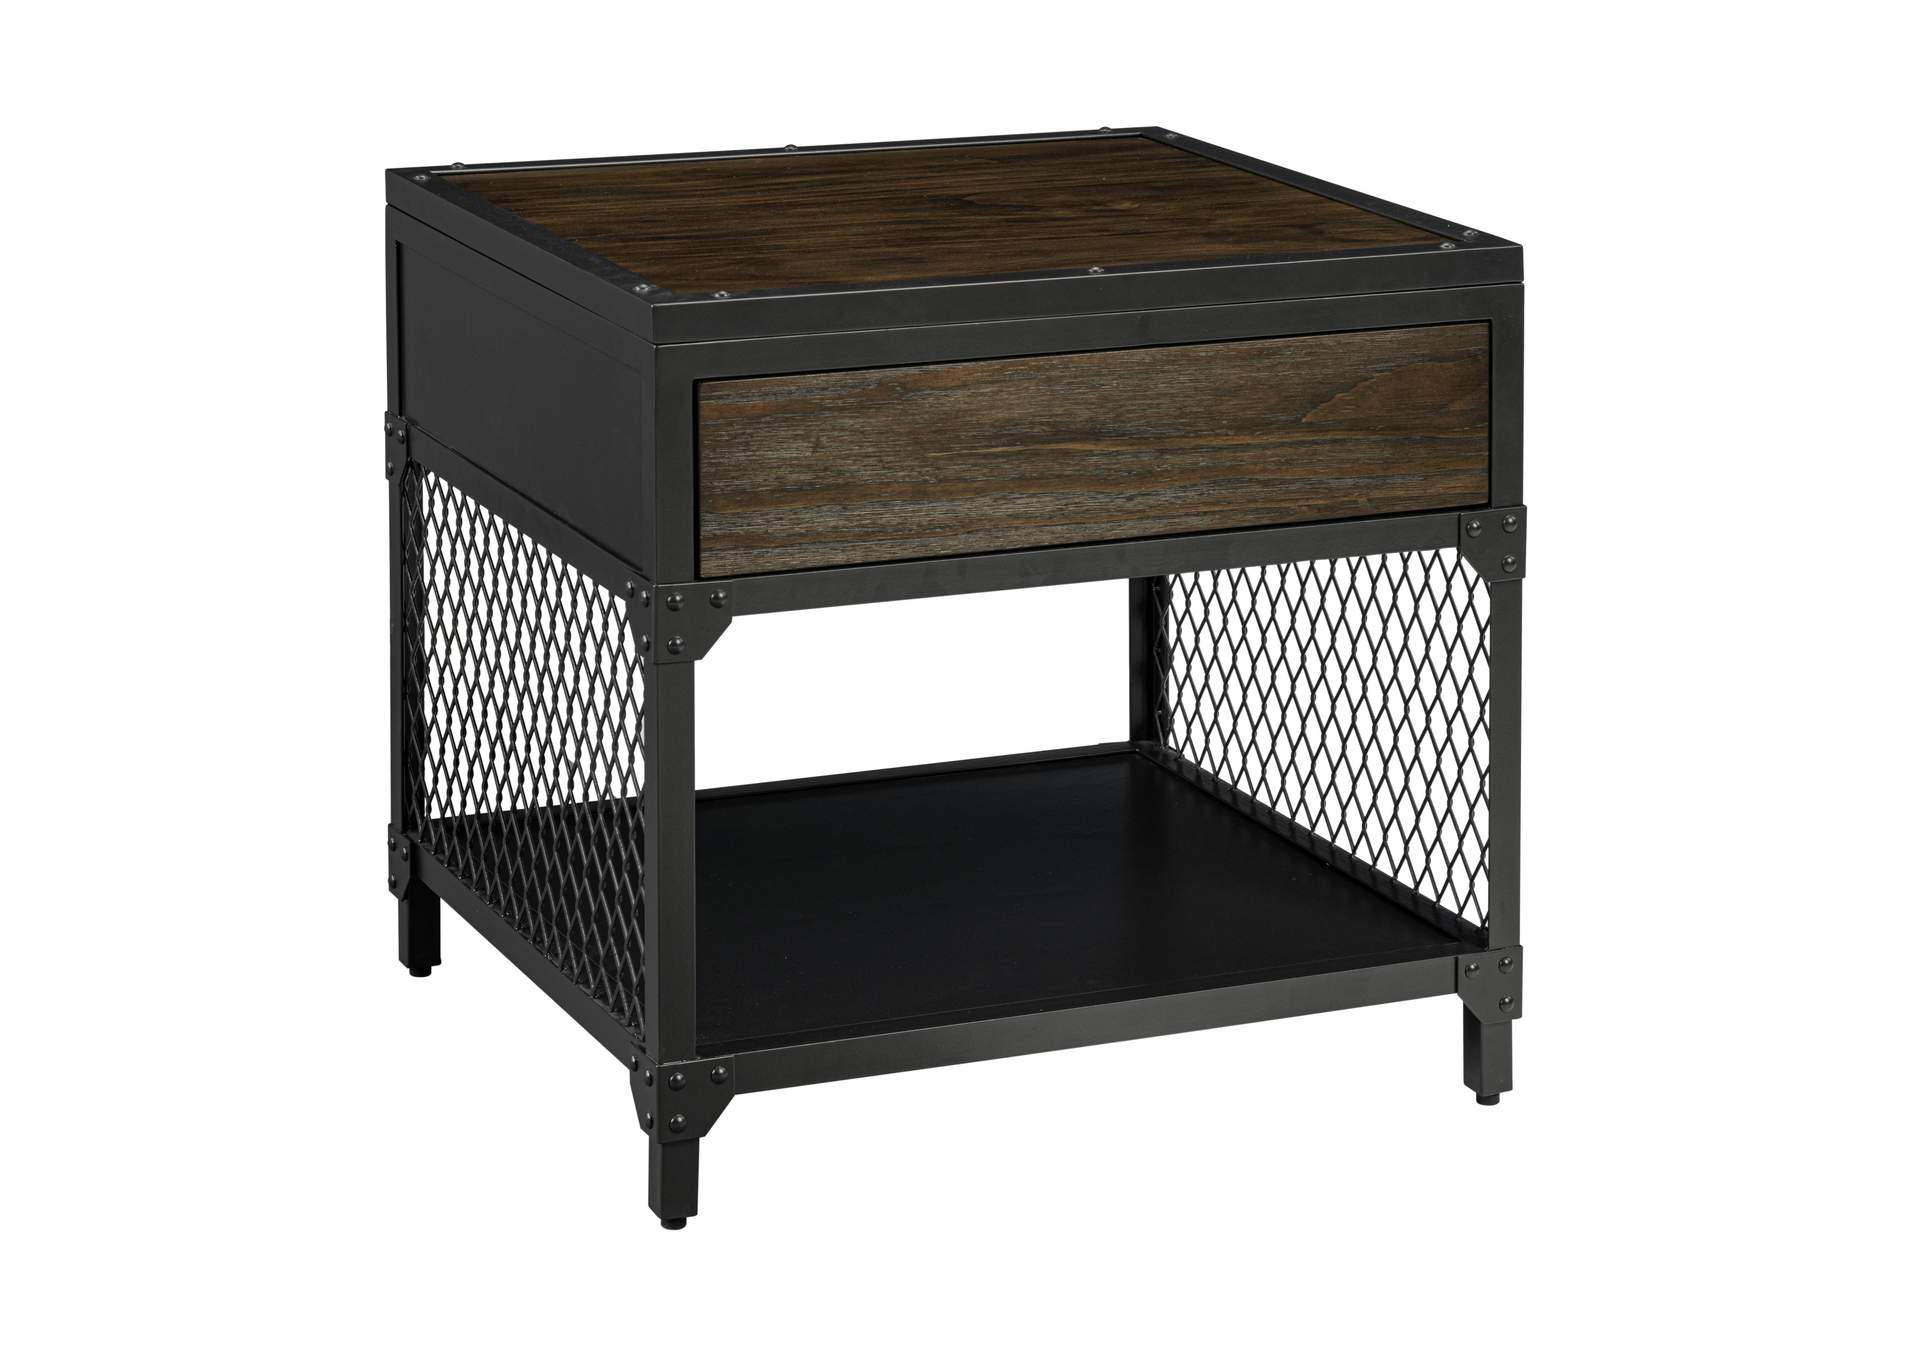 Cyrus End Table by Lane at Powell's Furniture and Mattress